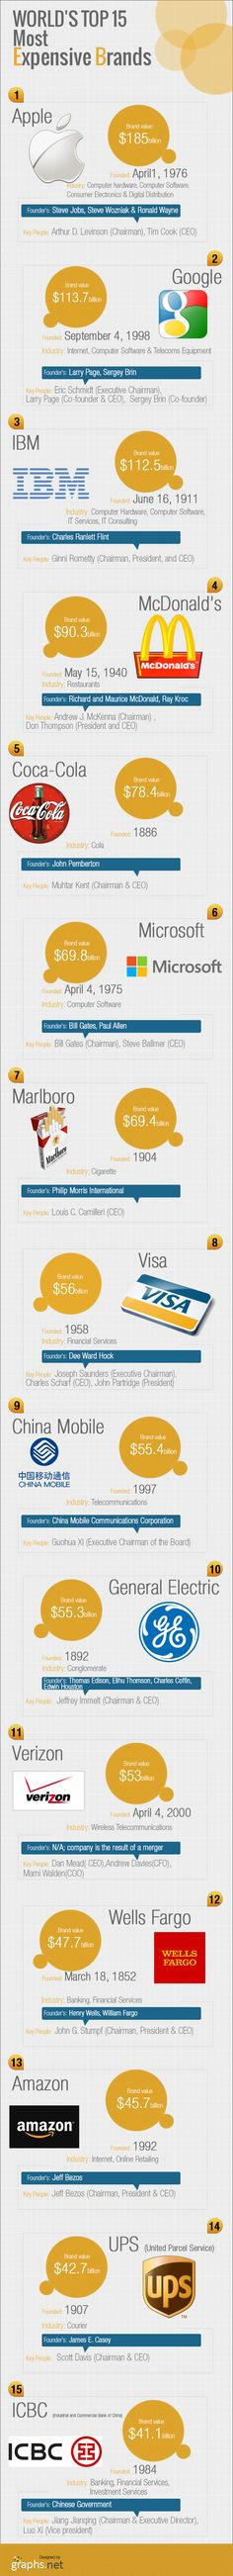 [INFOGRAPHIC]: Top expensive #Brands in #World